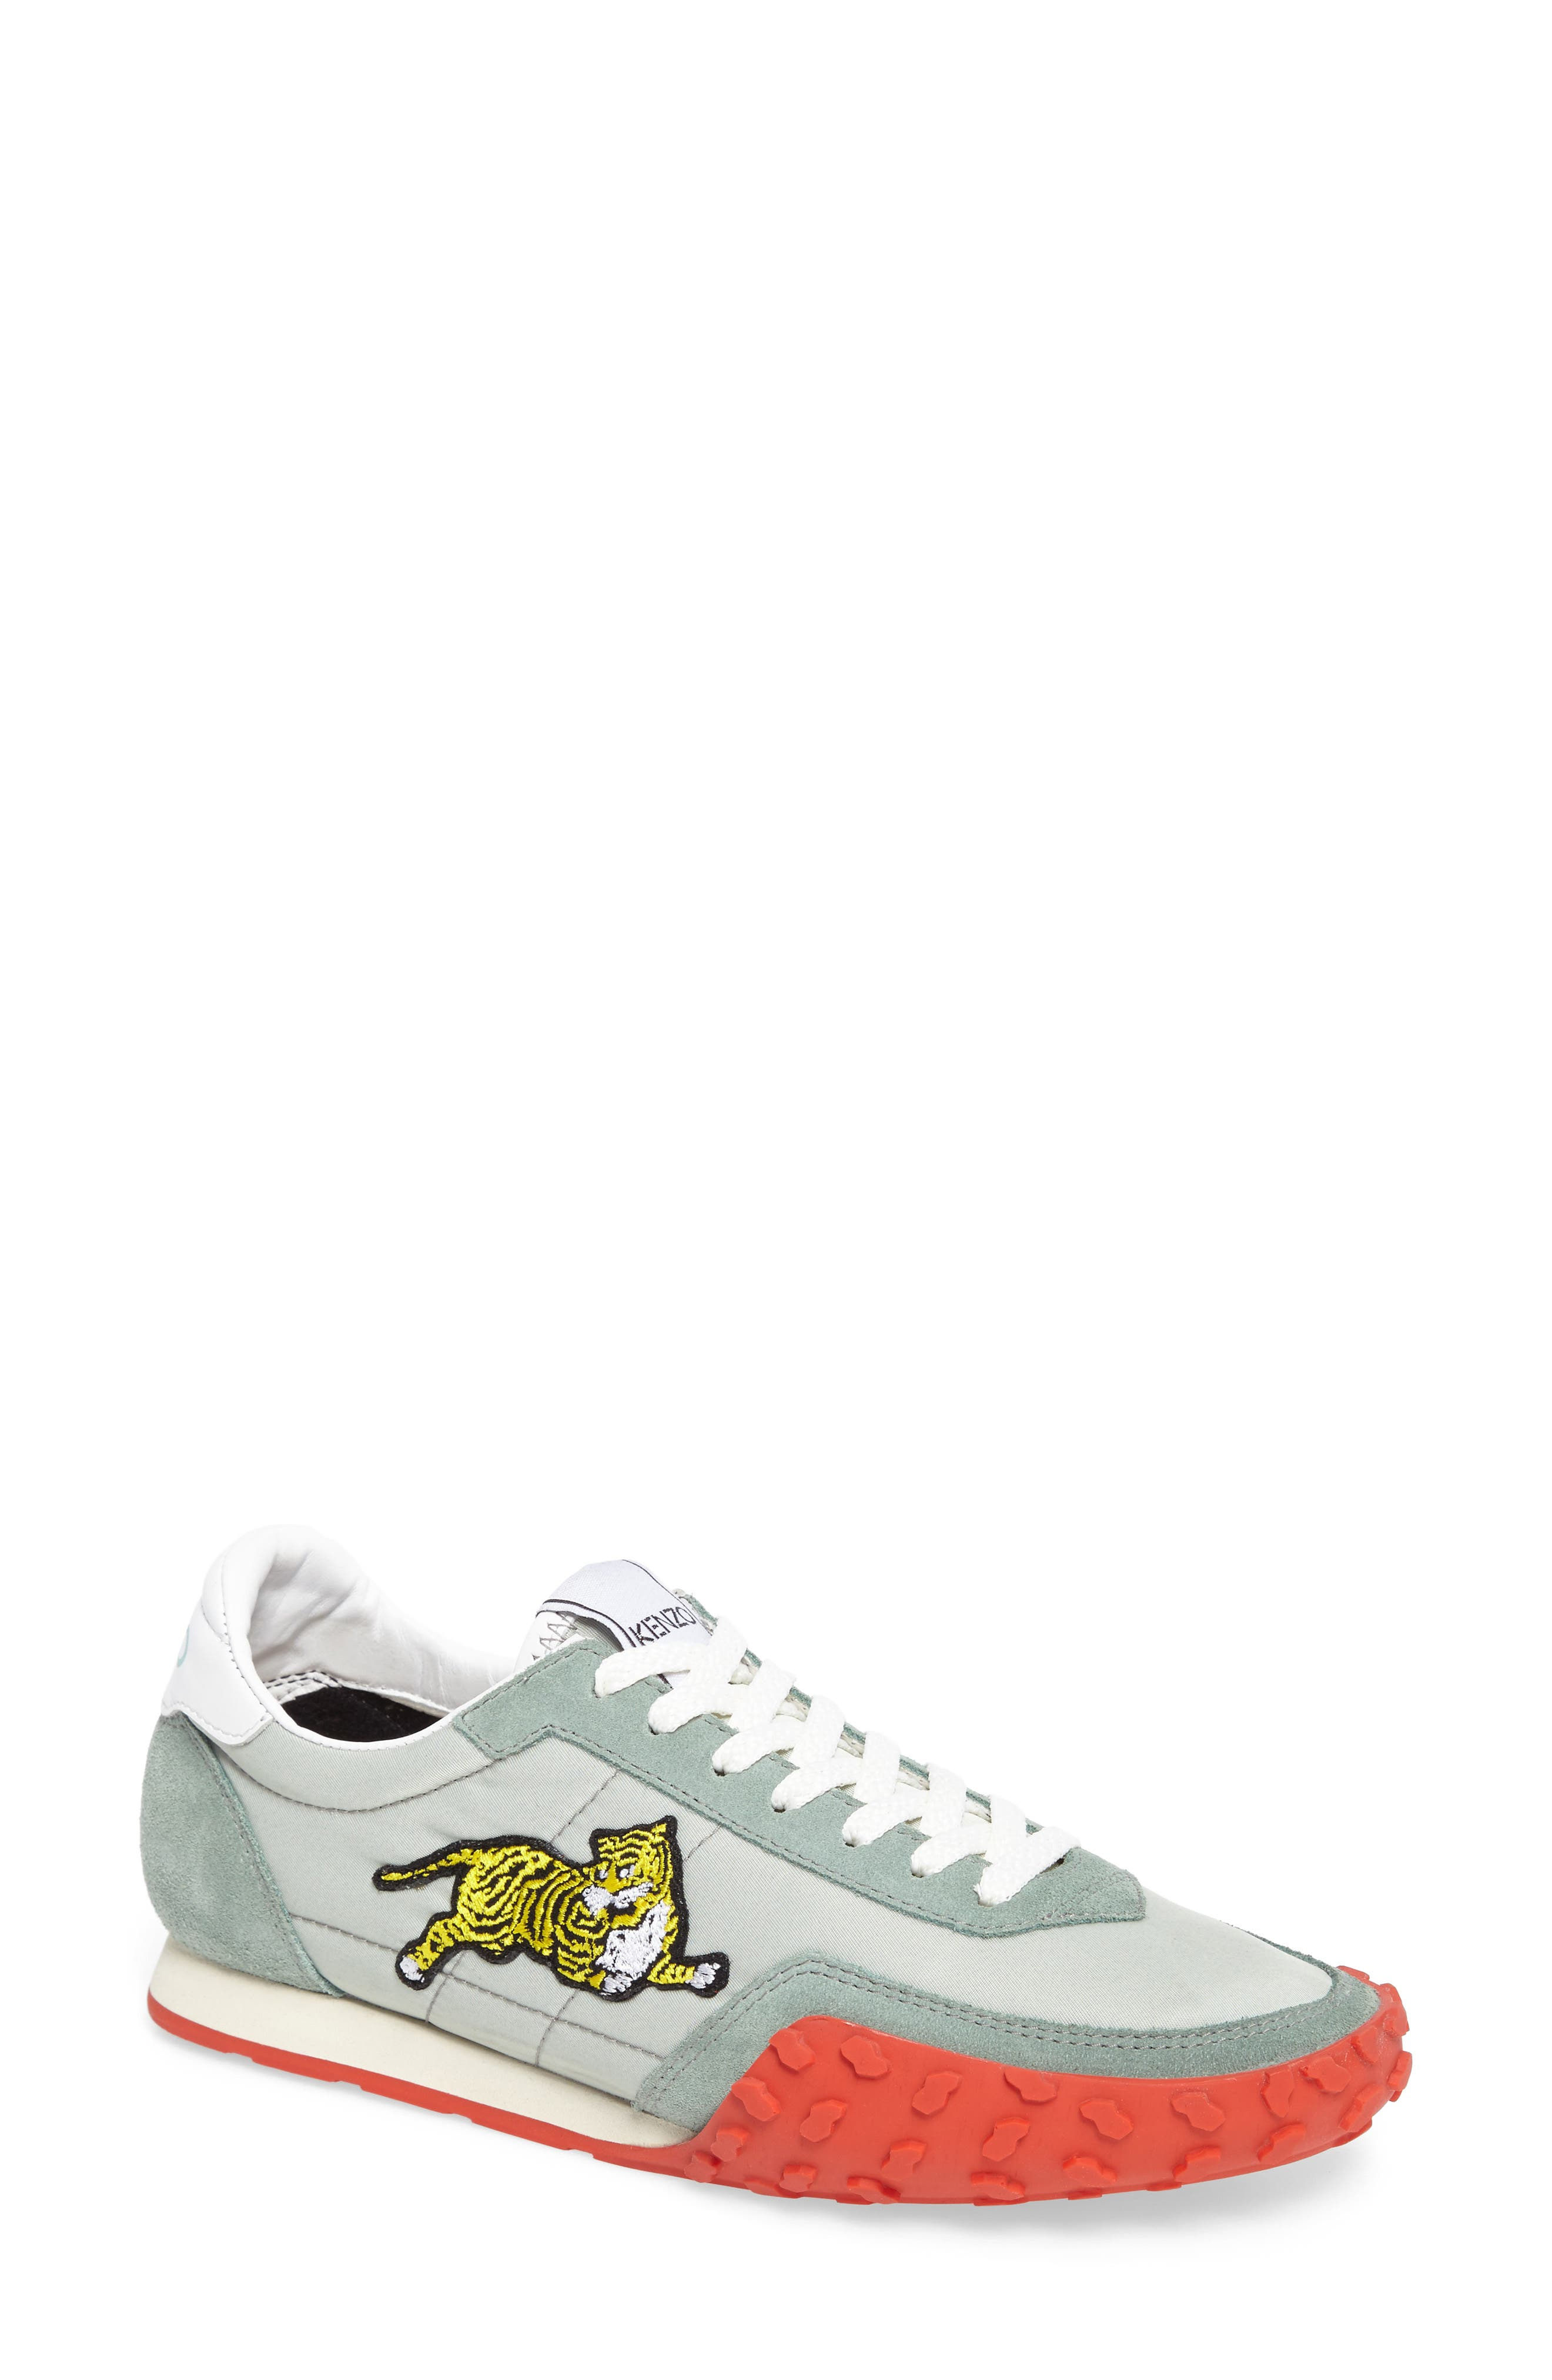 Alternate Image 1 Selected - KENZO MOVE Sneaker (Women)